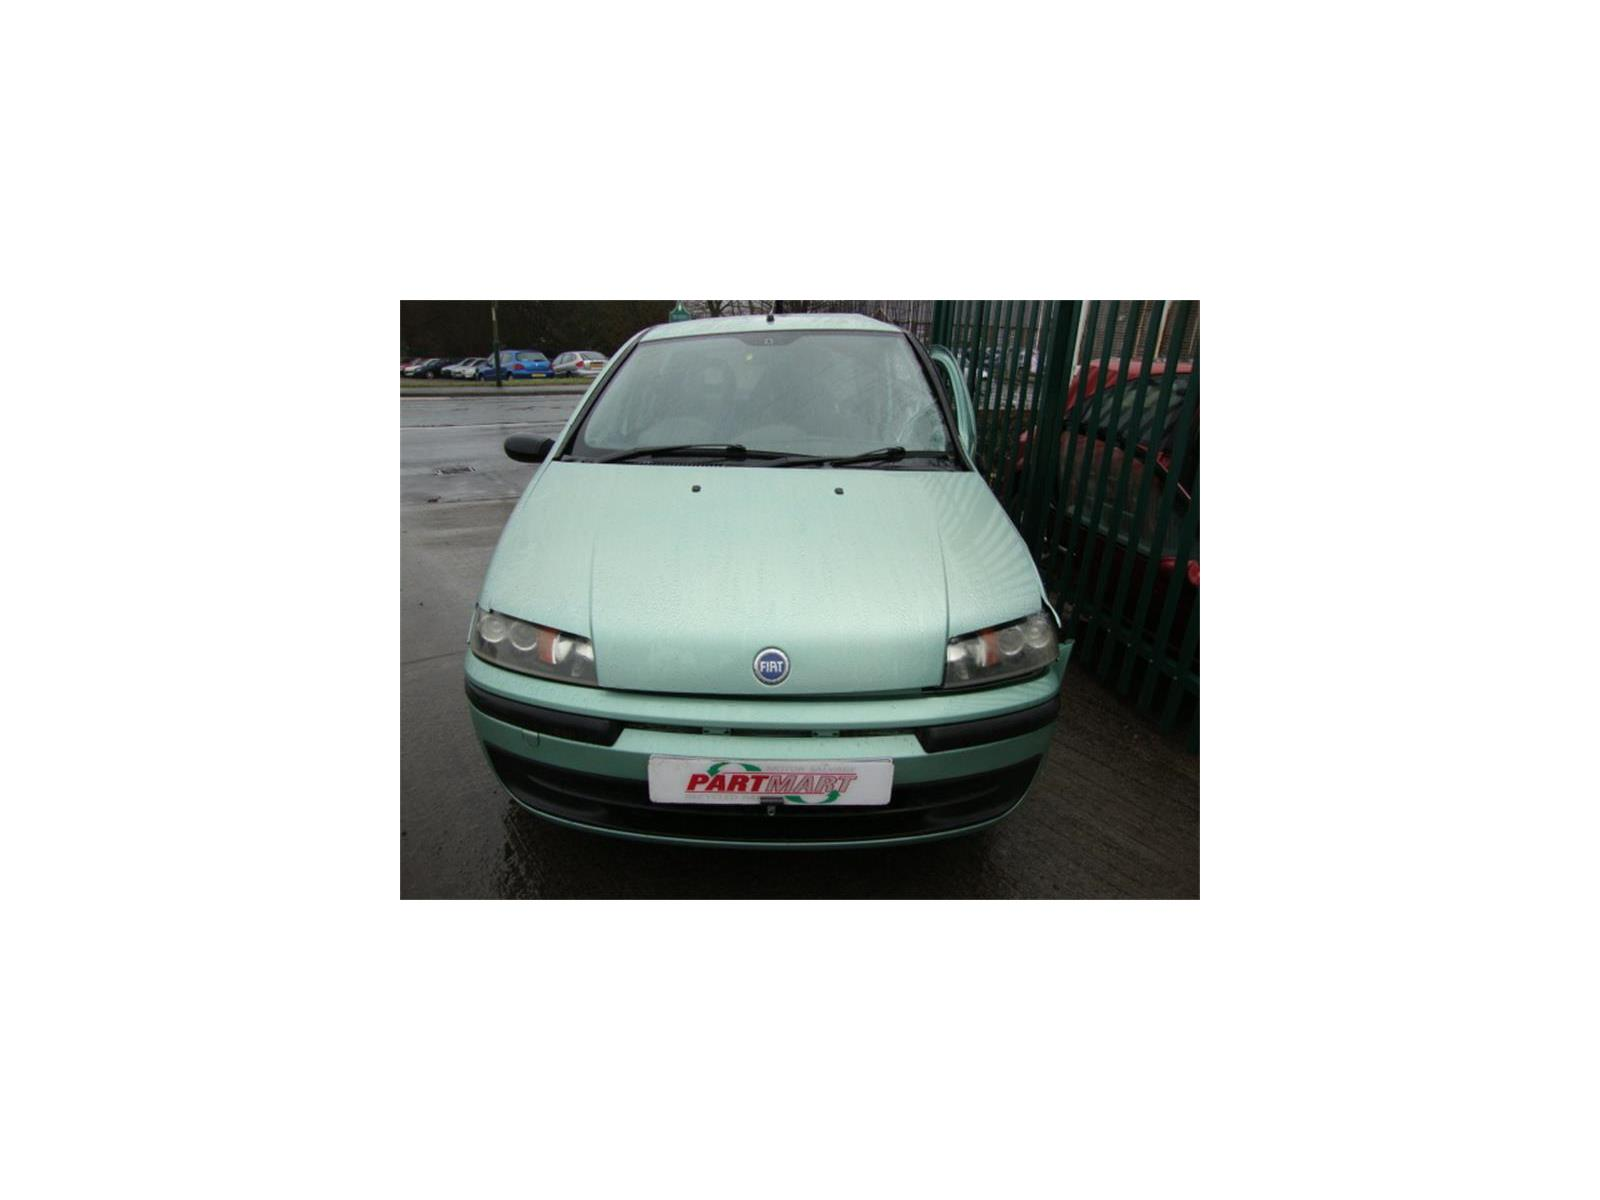 2002 Fiat Punto 2002 To 2003 5 Door Hatchback (Petrol / Manual